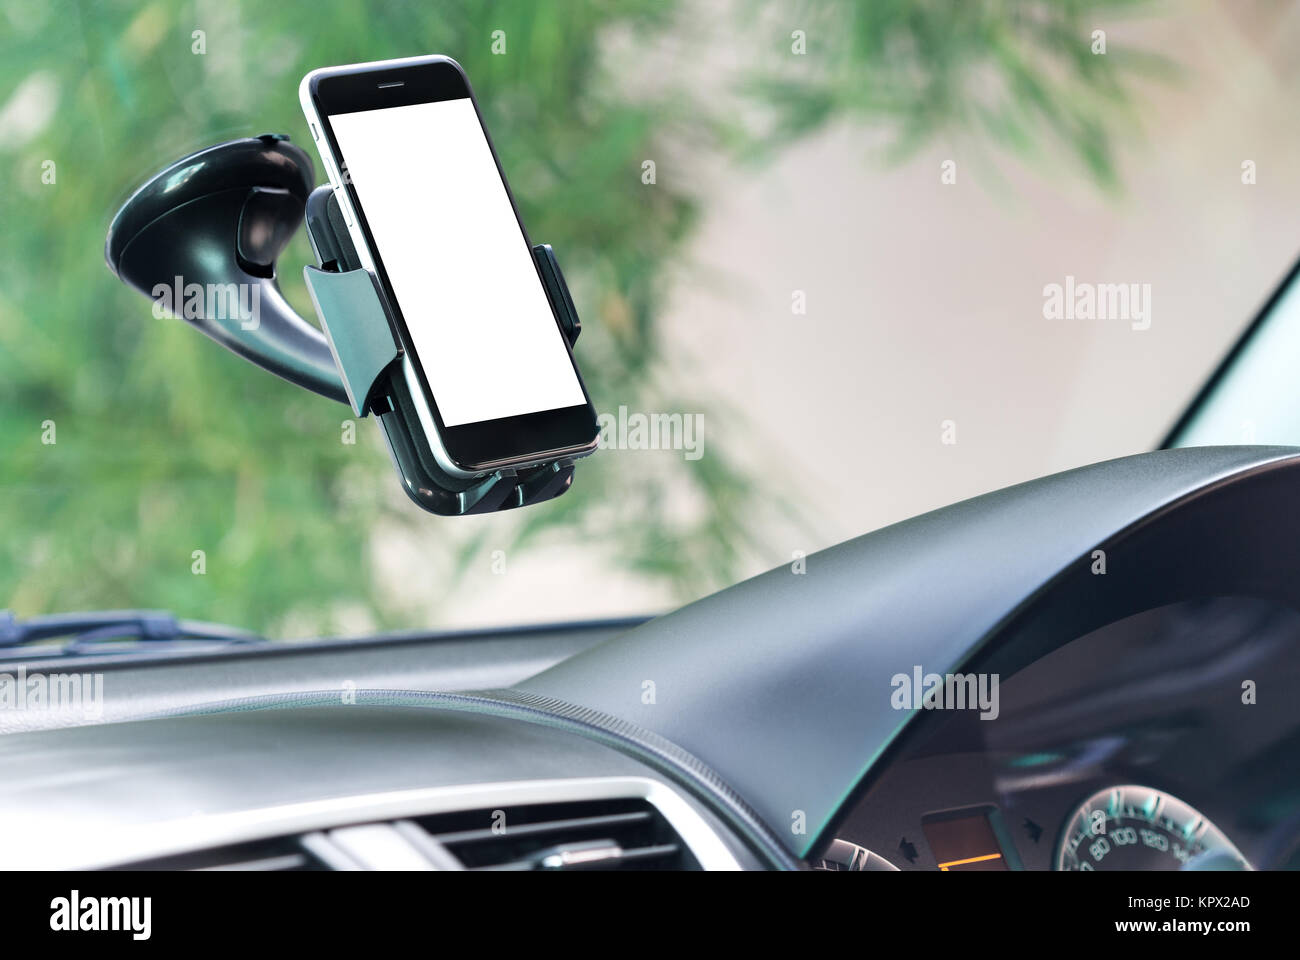 close up phone mounted in car - Stock Image